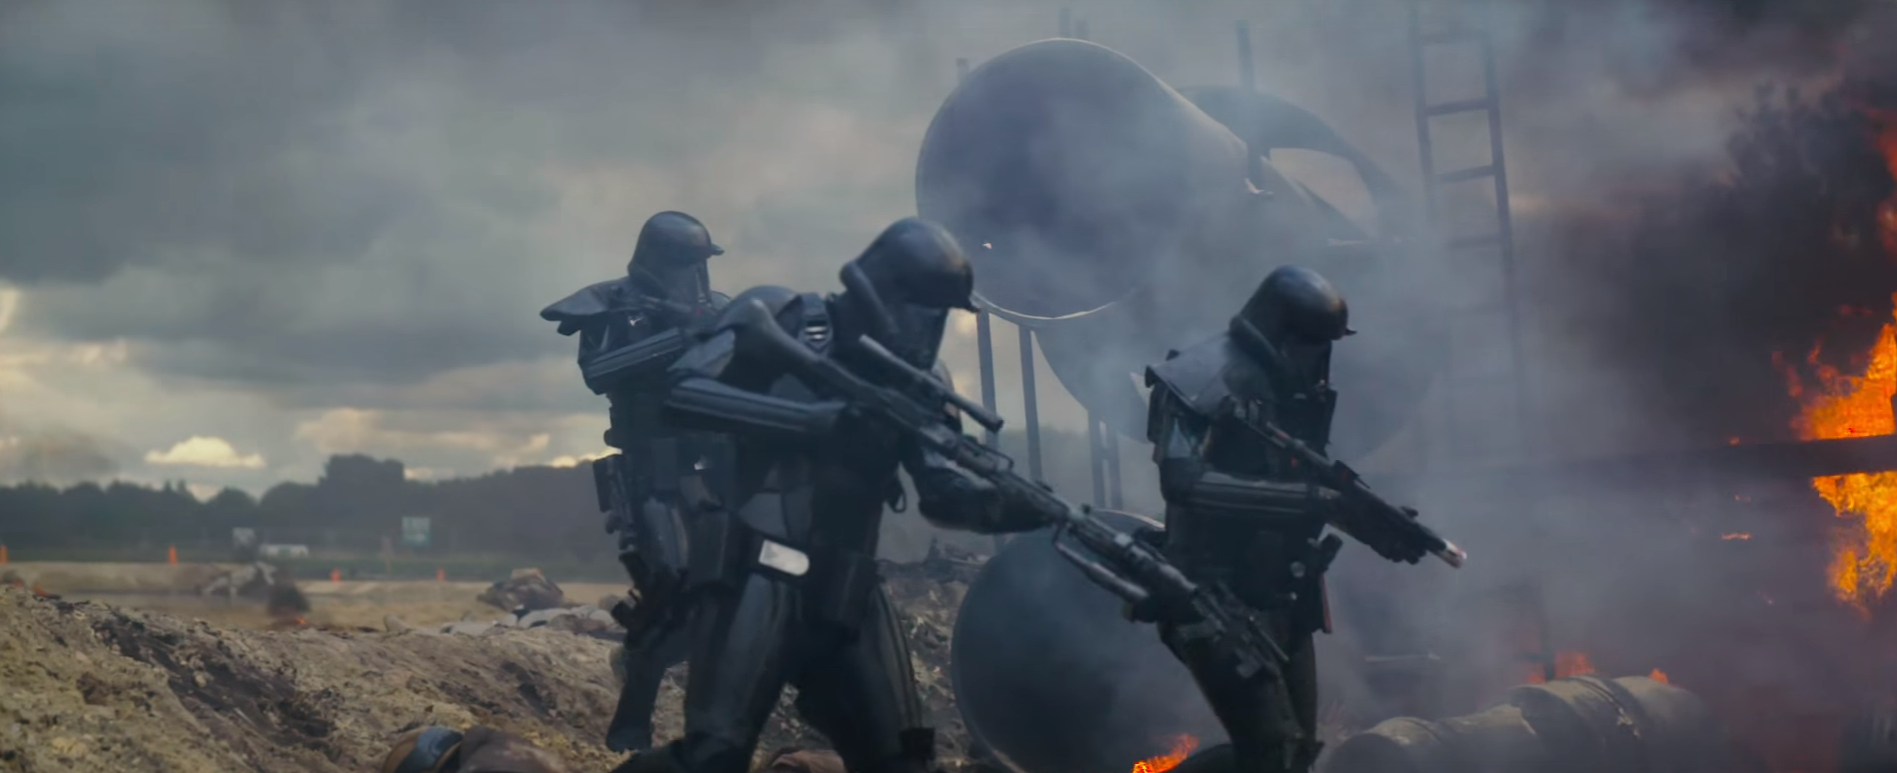 02-death-troopers